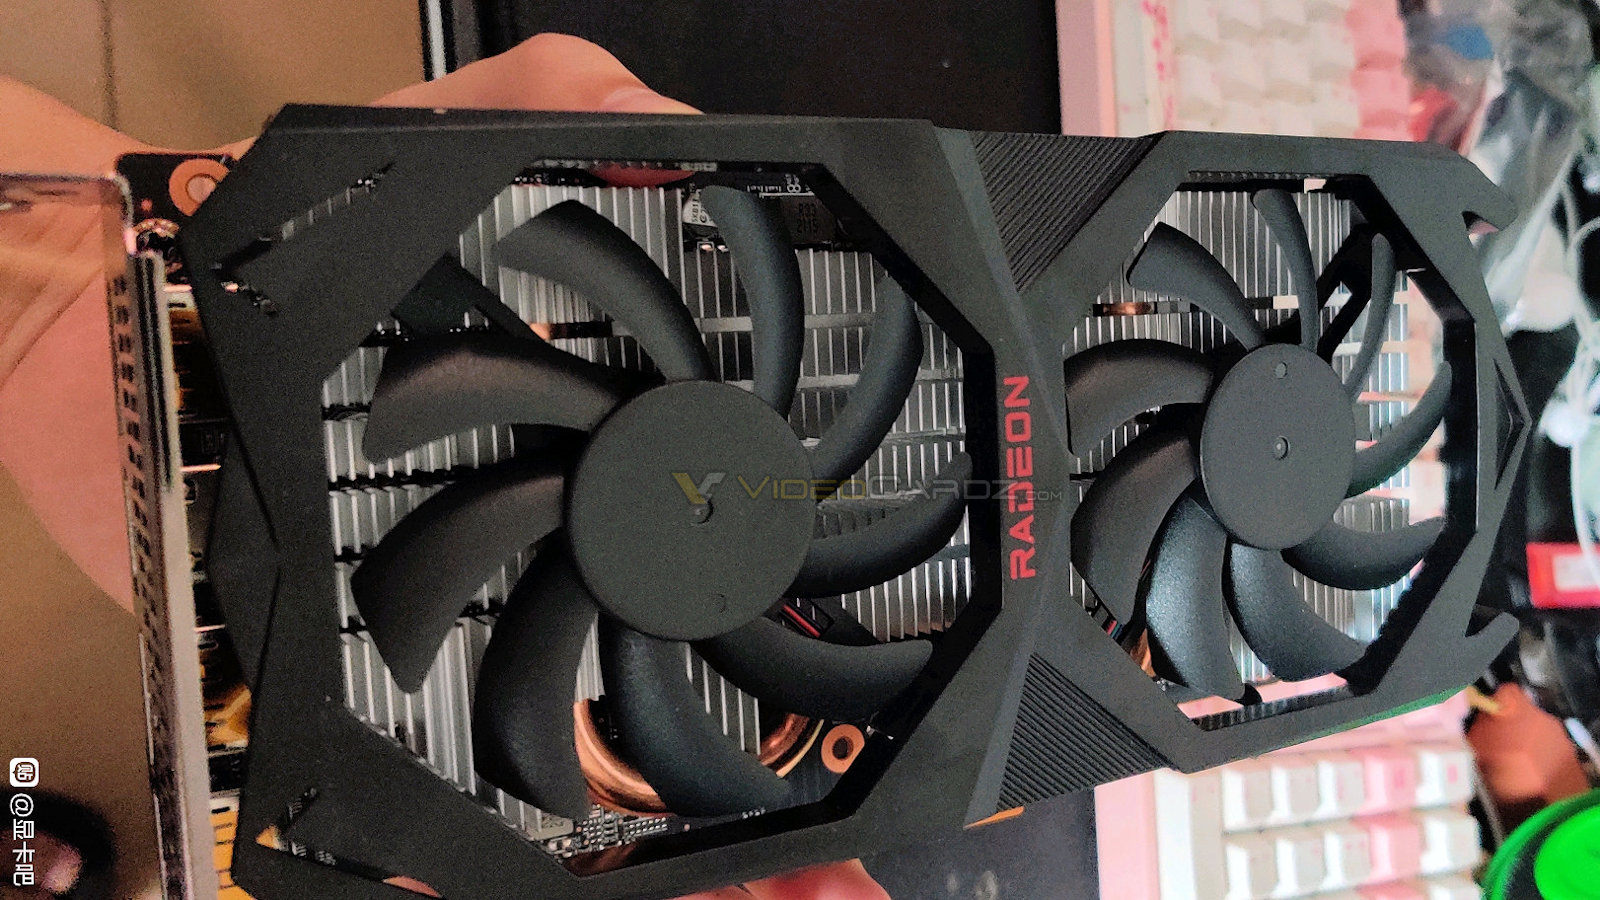 A graphics card rumored to be the upcoming AMD Radeon RX 6600XT